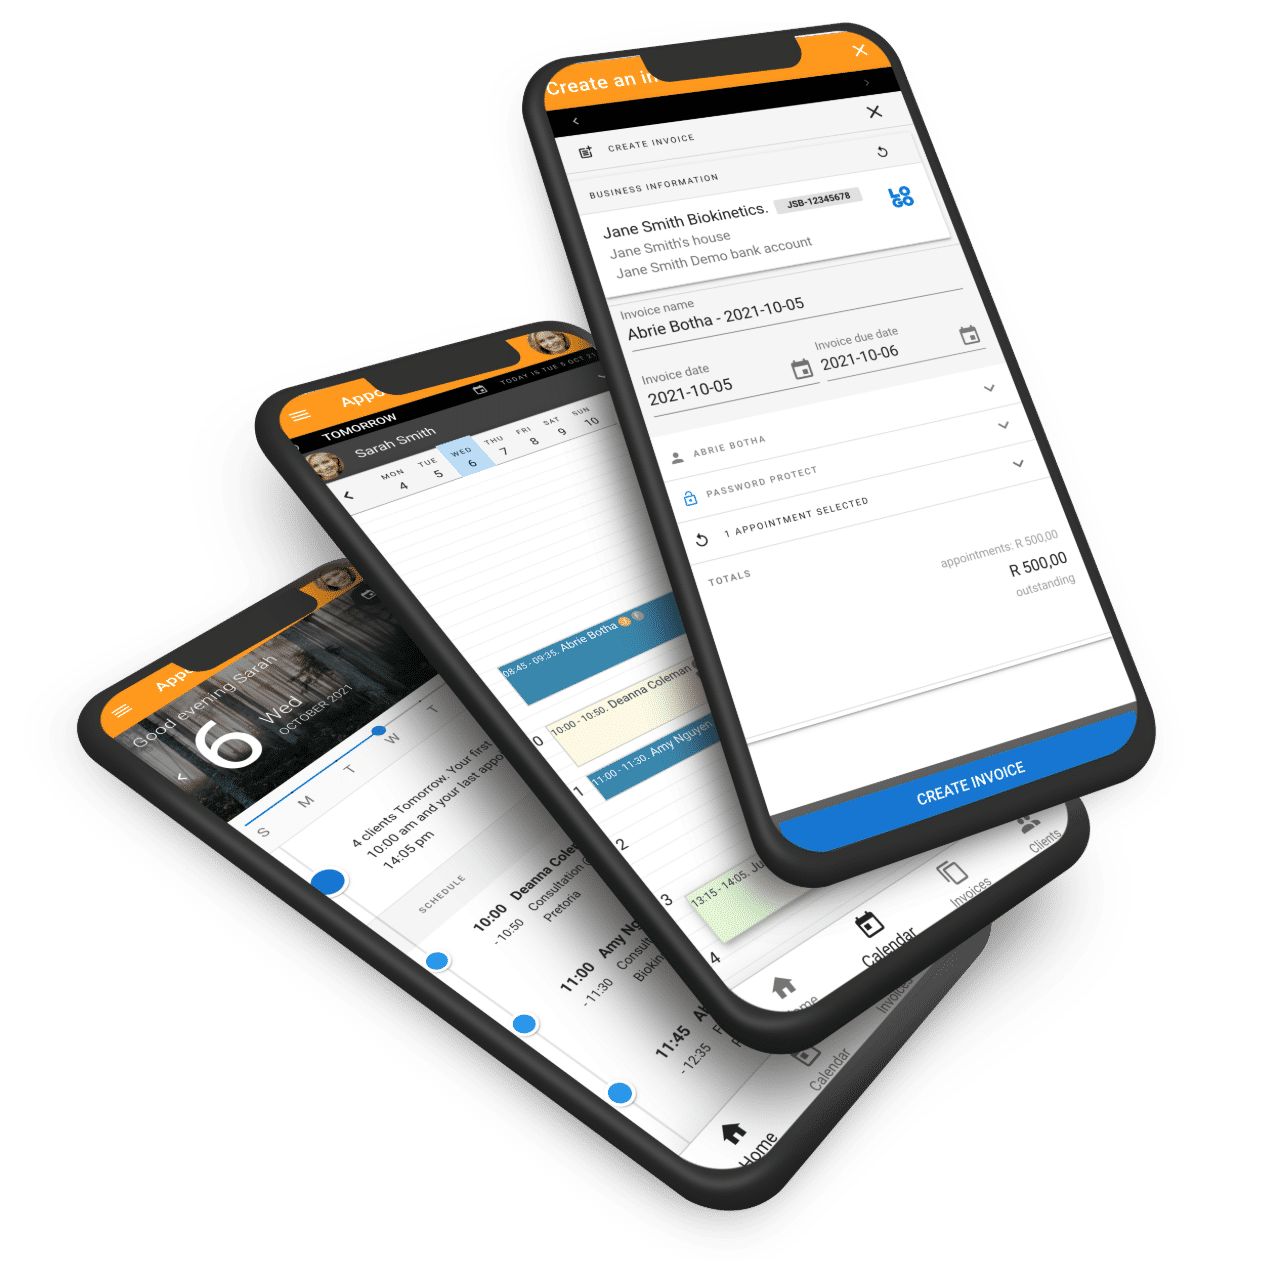 More than just an appointment manager app